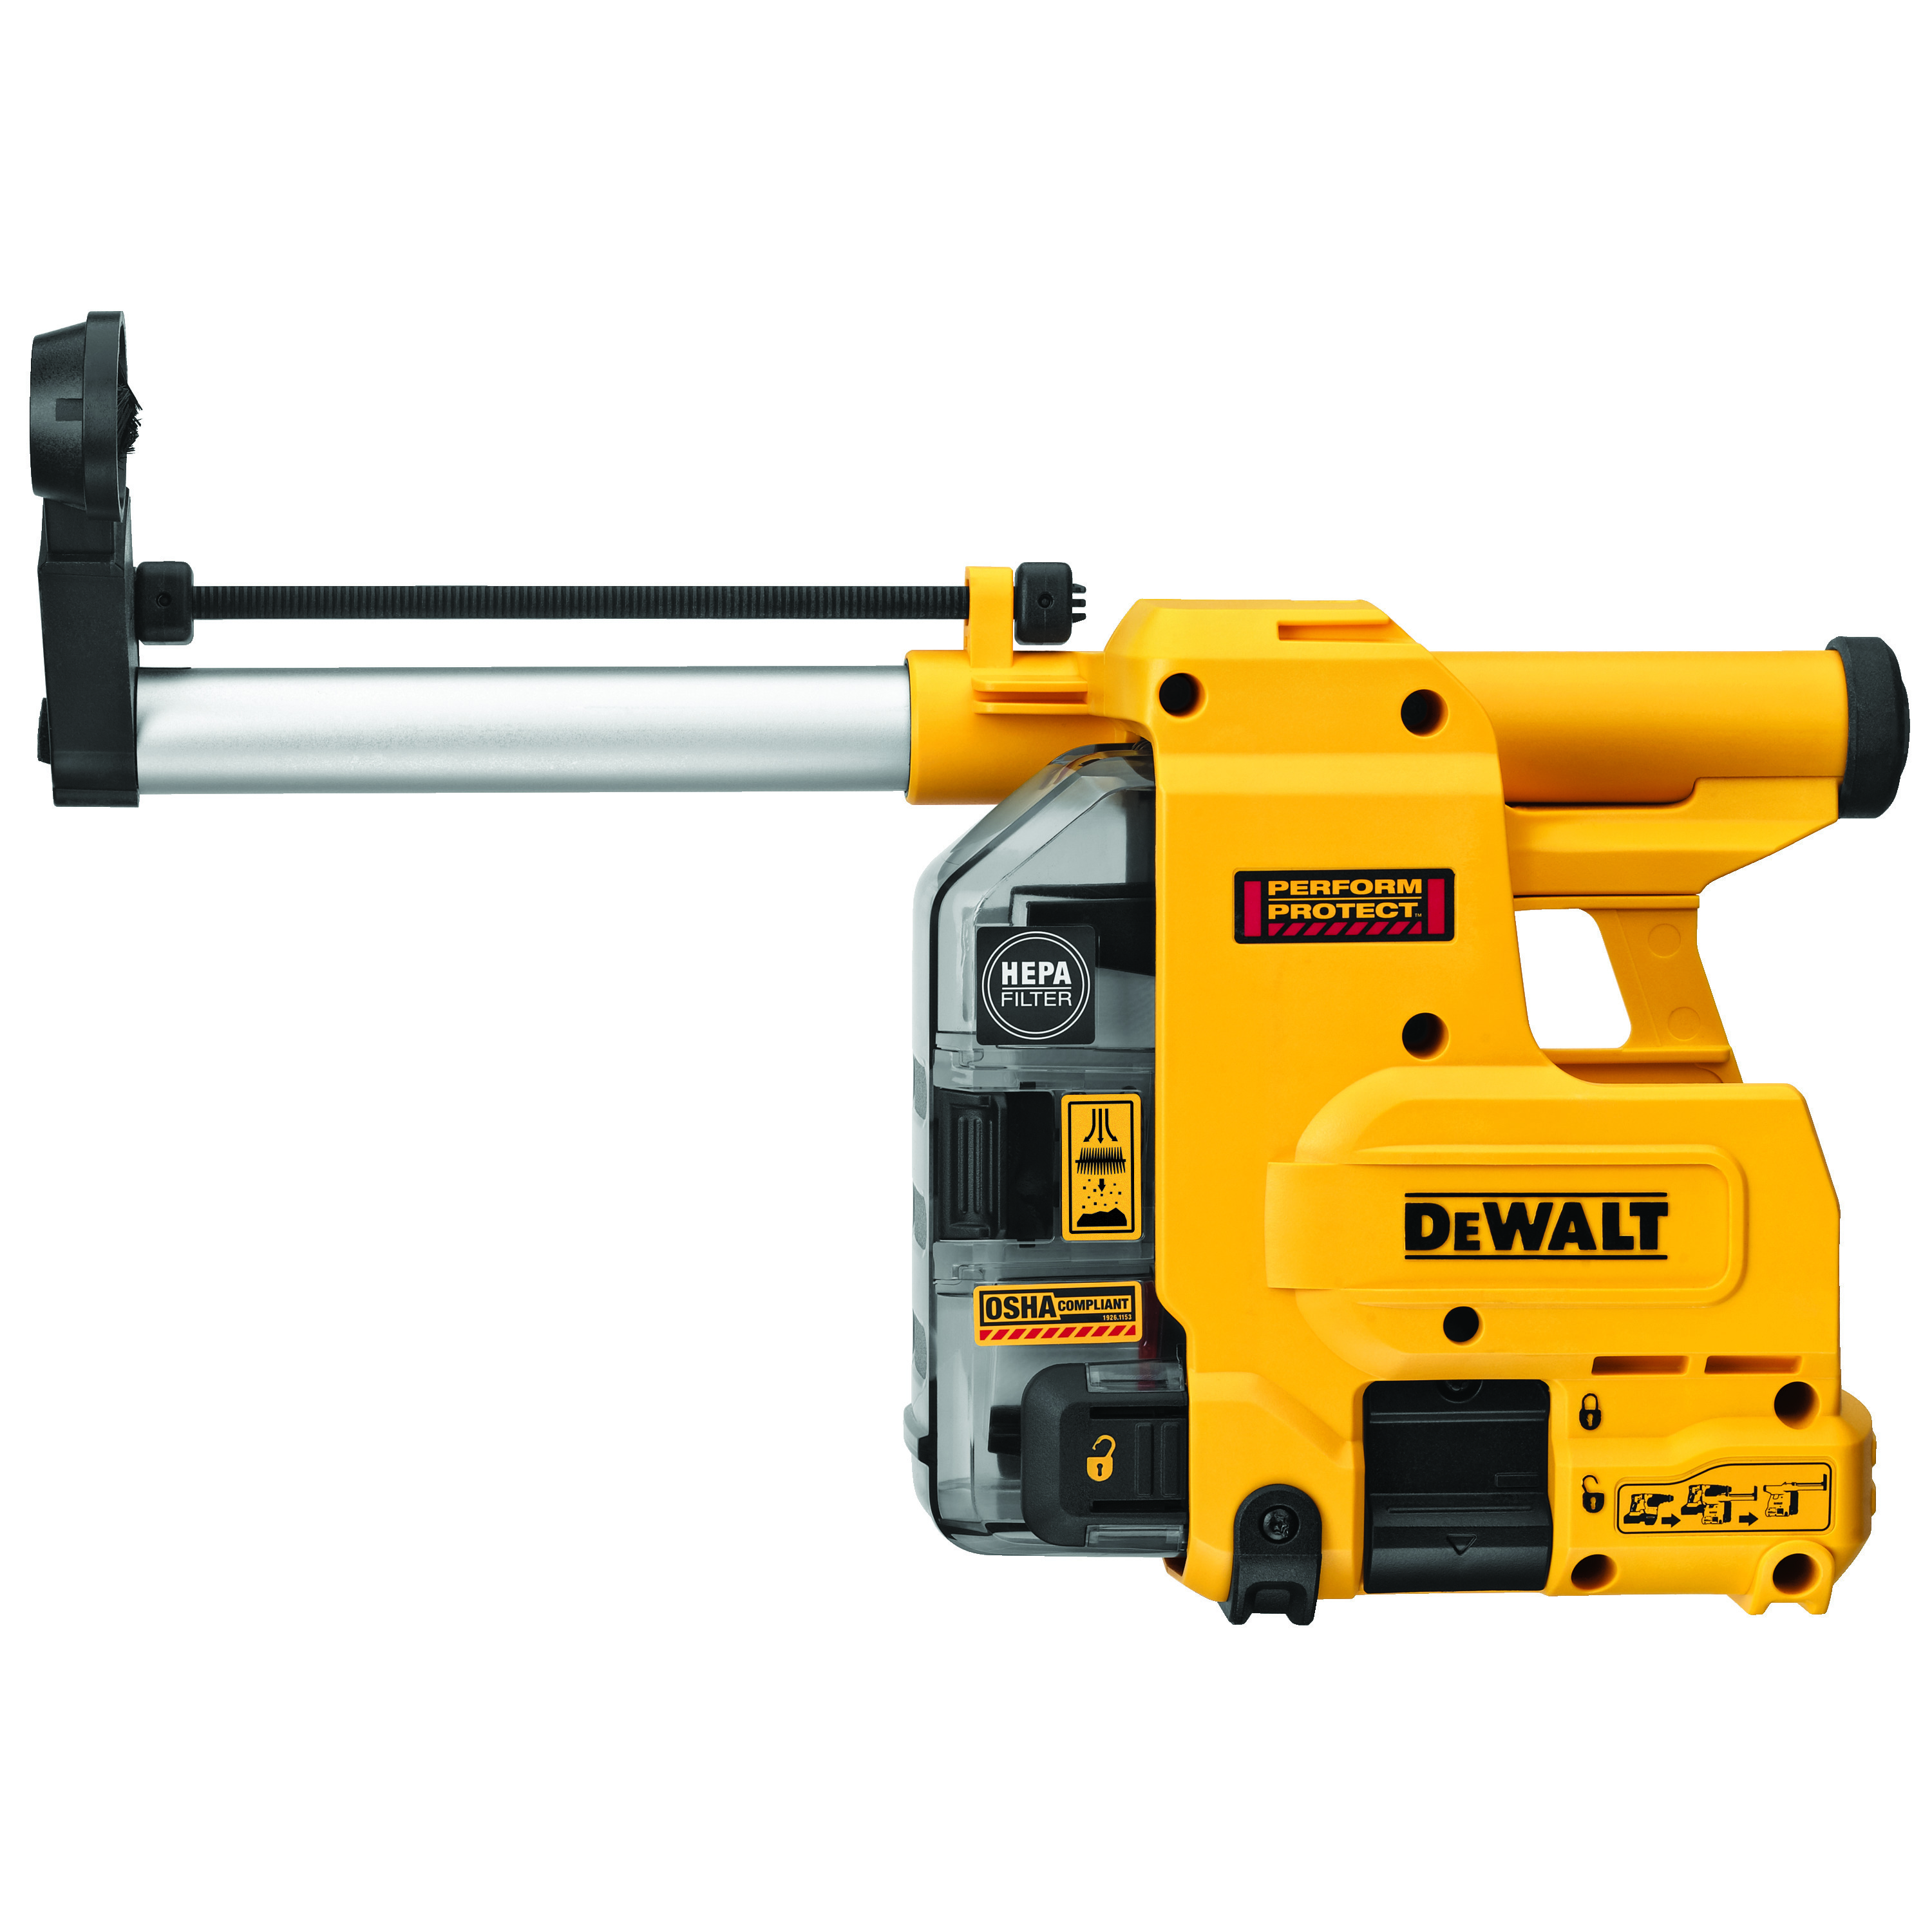 DeWALT® DW235G VSR Drill, 1/2 in Keyed Chuck, 120 VAC, 0 to 850 rpm Speed, 11-1/8 in OAL, Tool Only